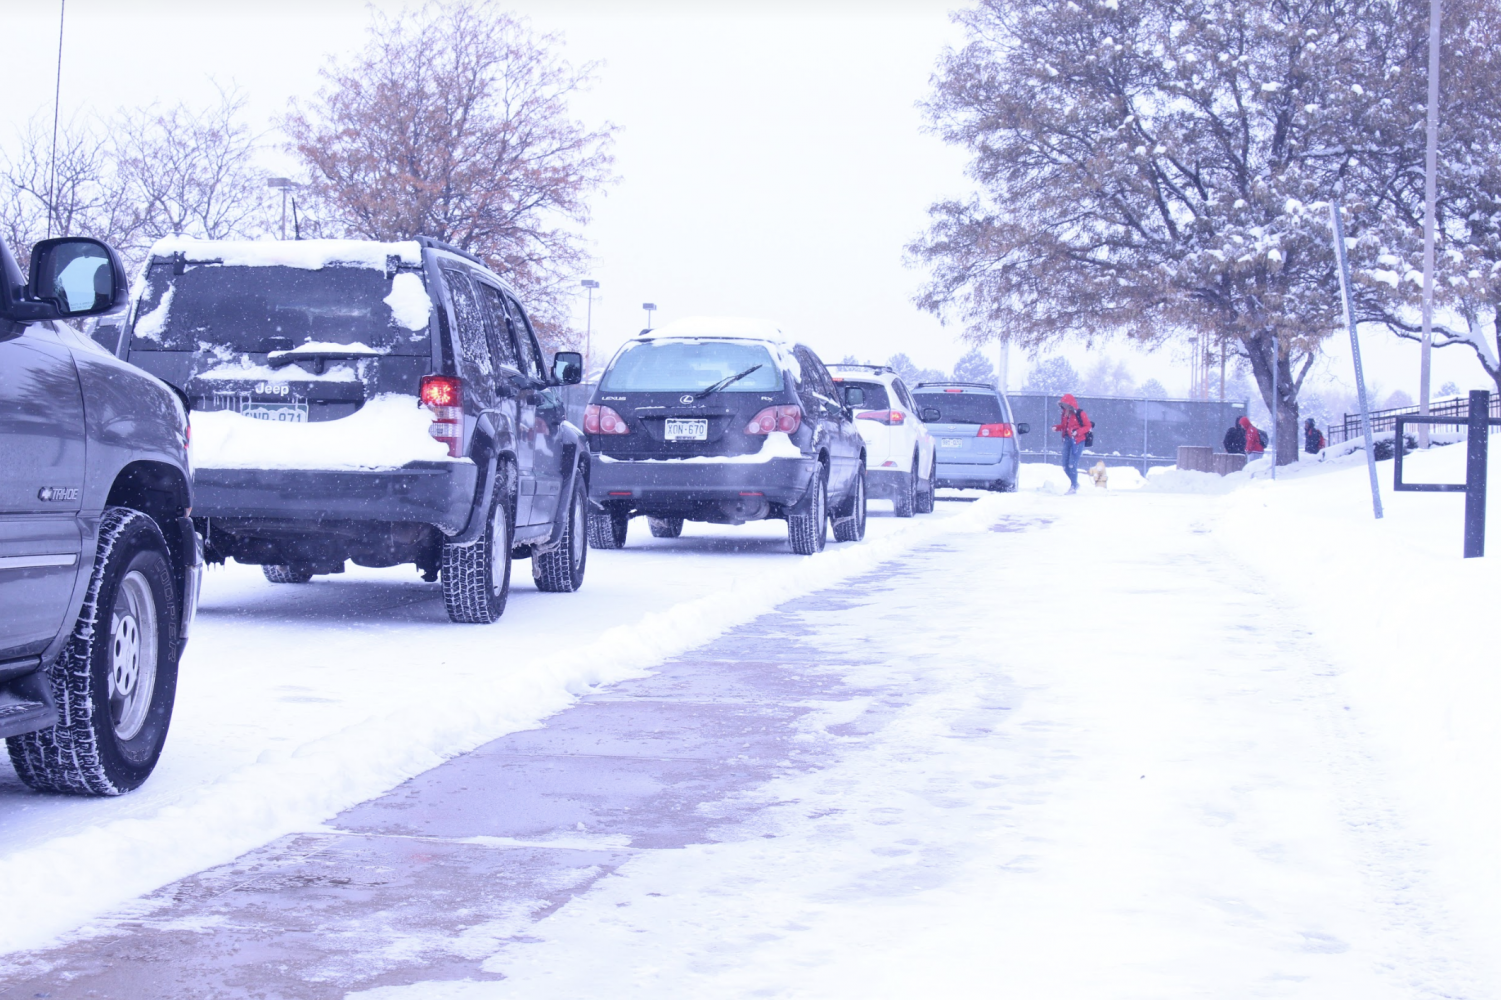 Parents line up to pick up students after school is cancelled early by APS. (Alexis Drummond)